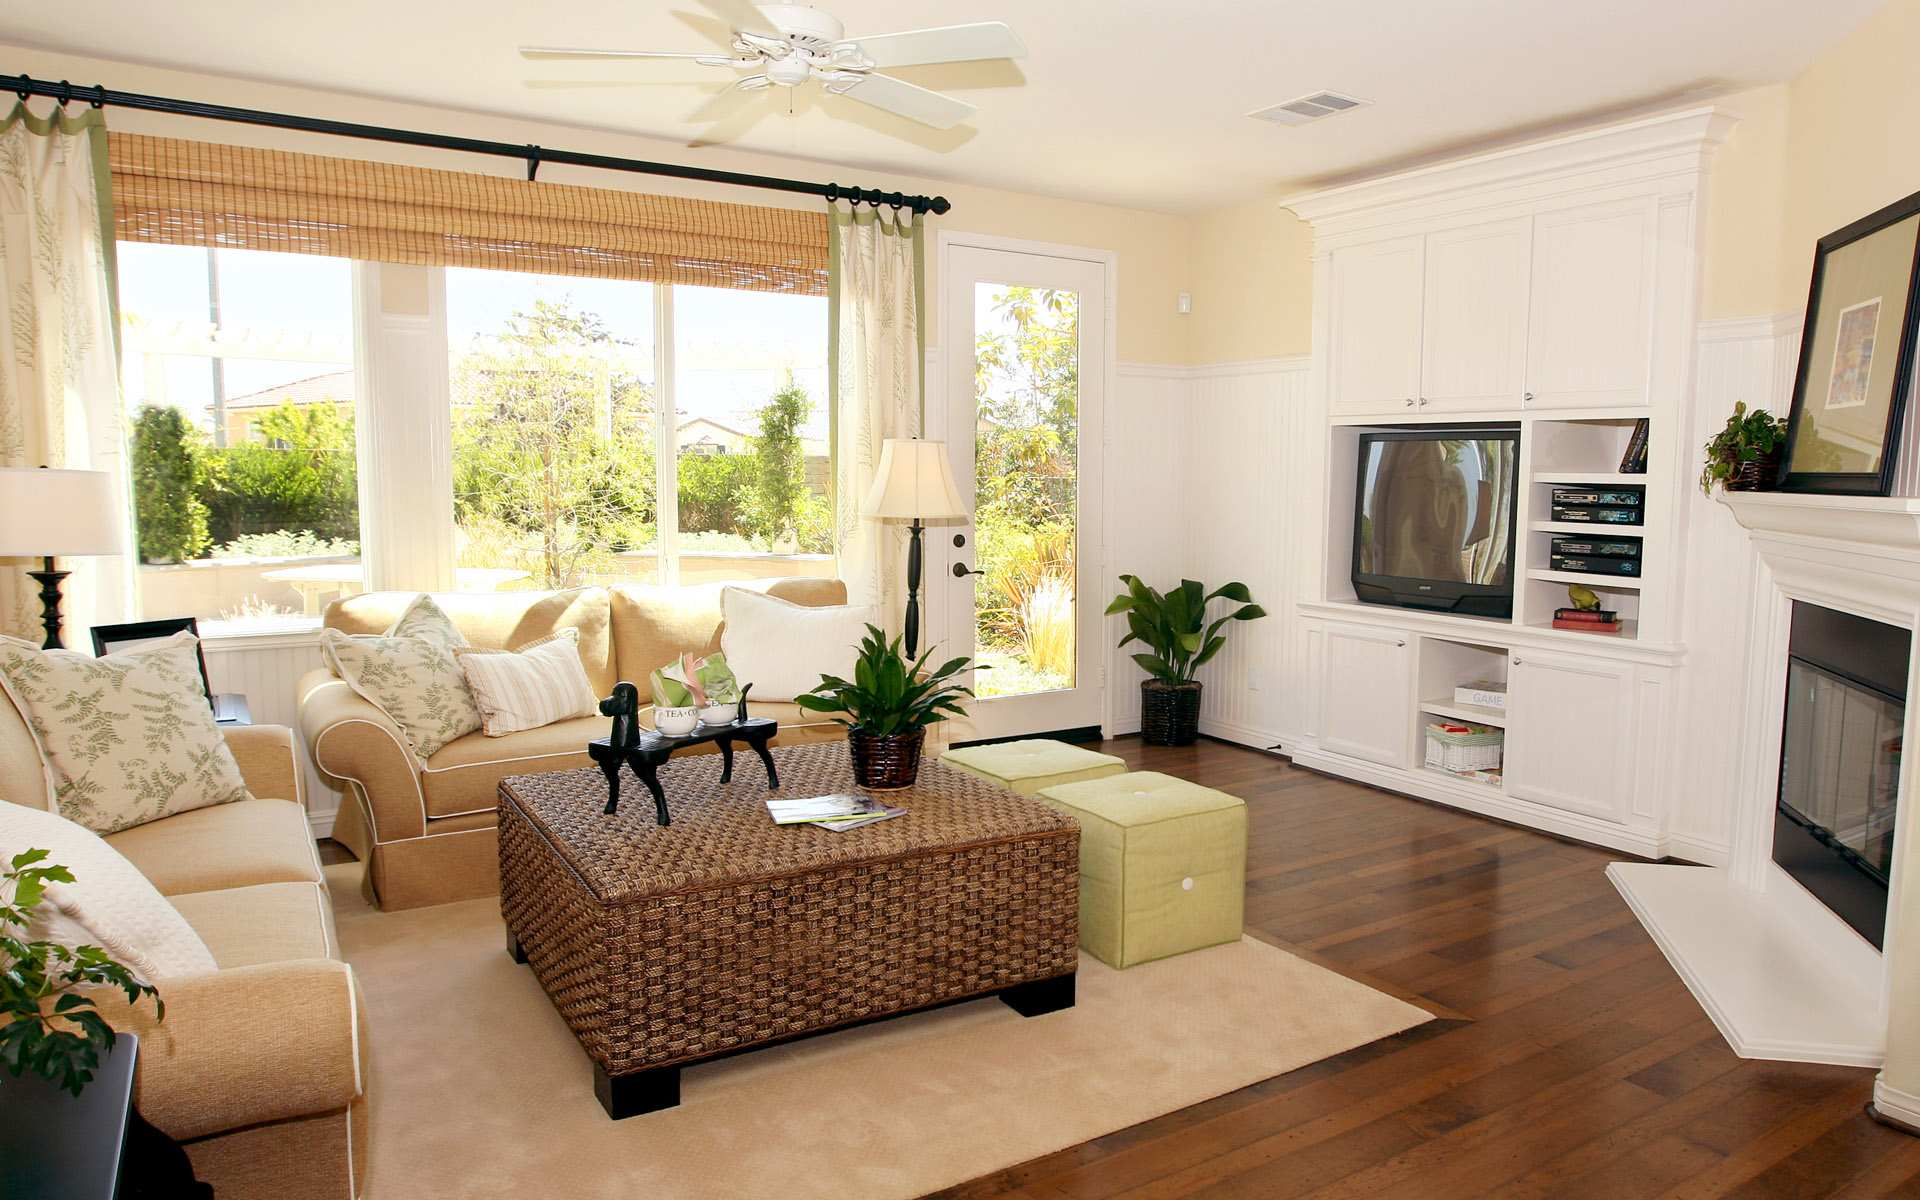 Grand Living Space Decor Using Beige Sofa And Coffee Table